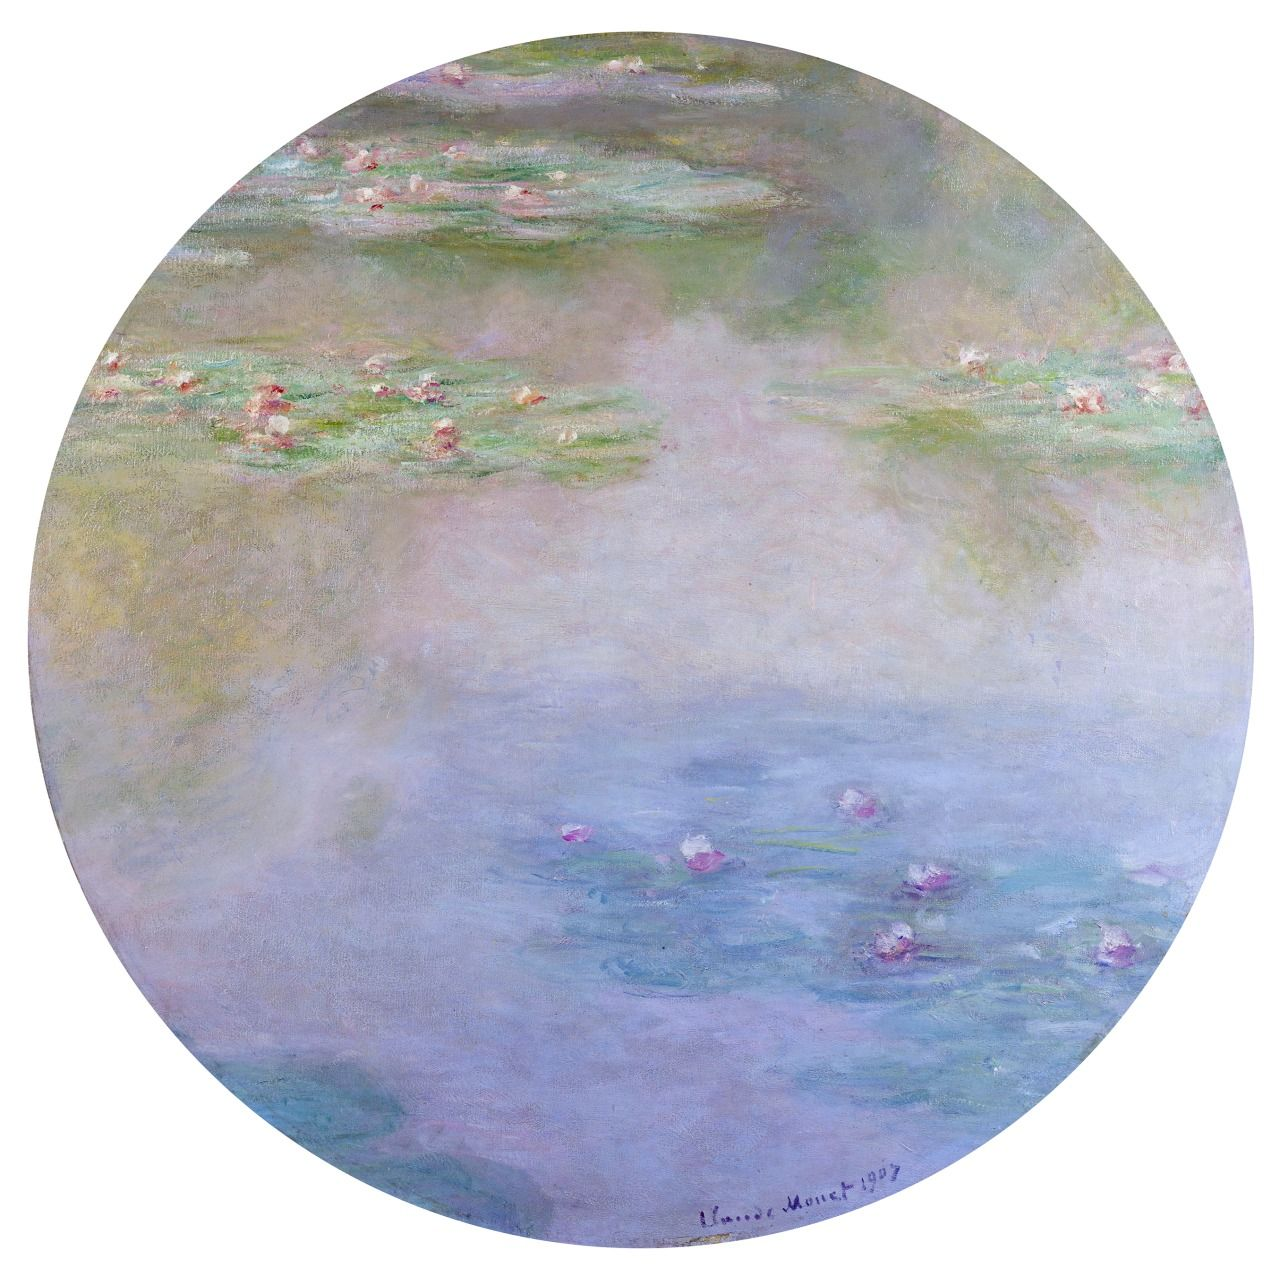 Pin by Quaintrelle Sehgal on Artist's Block | Claude monet water lilies,  Monet water lilies, Claude monet